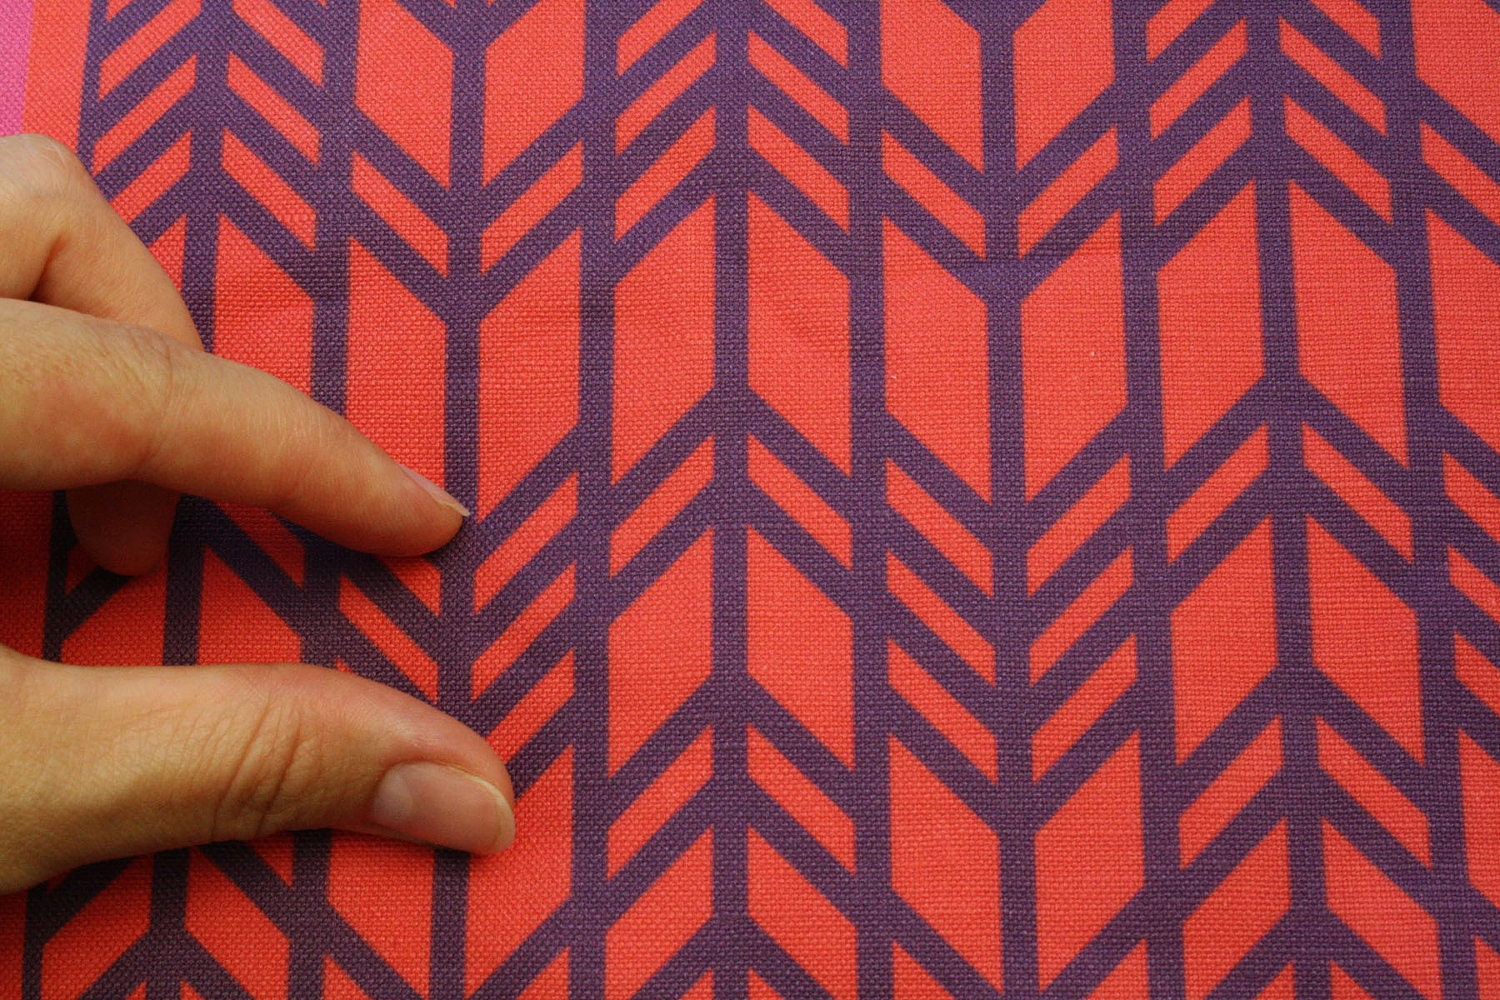 Home Decor Geometric Fabric Red and Plum Retro by